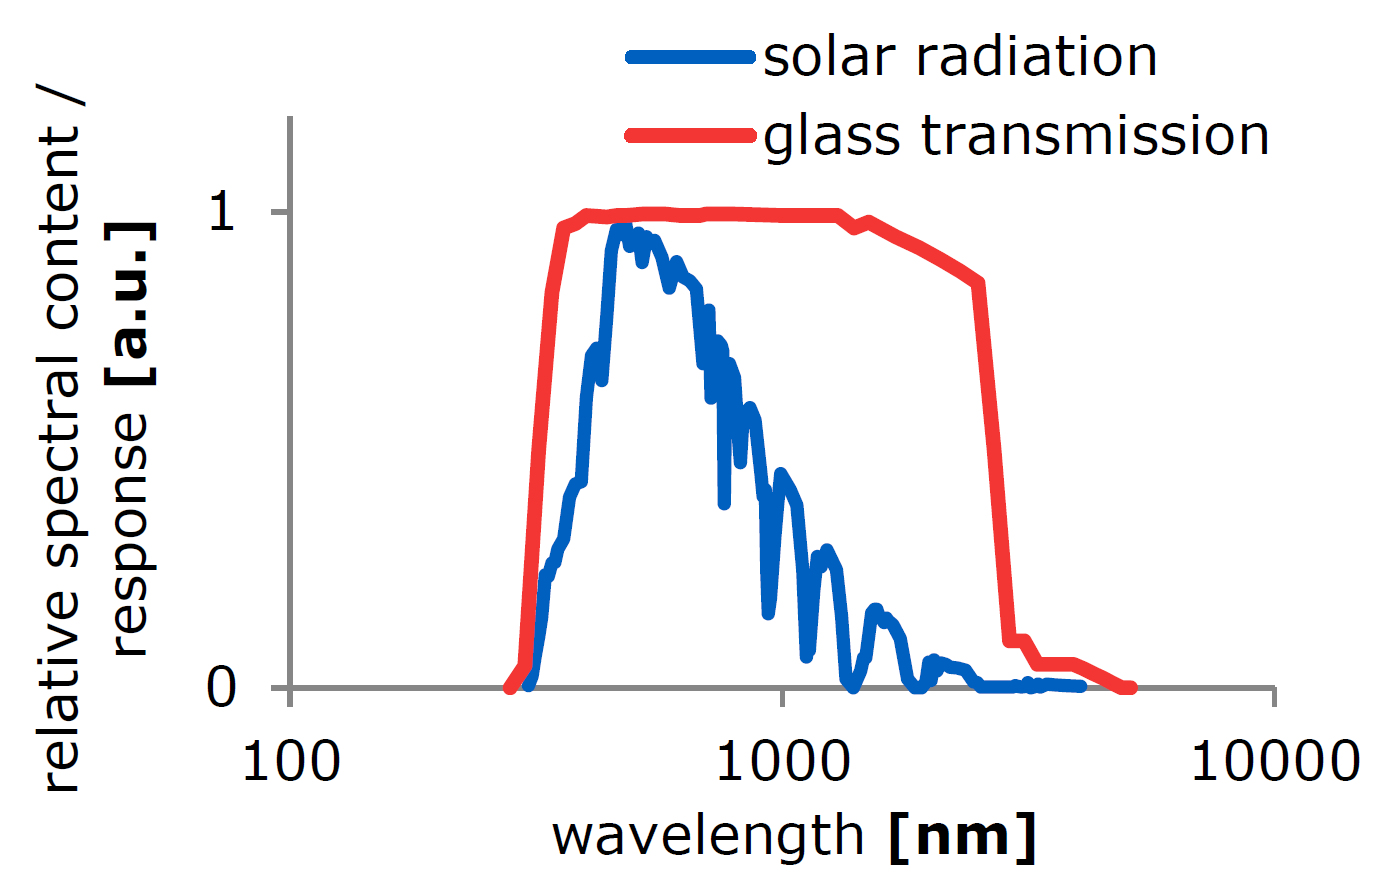 spectral transmission of glass compared to the solar spectrum at surface level. Thermal radiation from terrestrial or atmospheric sources is found around 10 μm and blocked by glass.